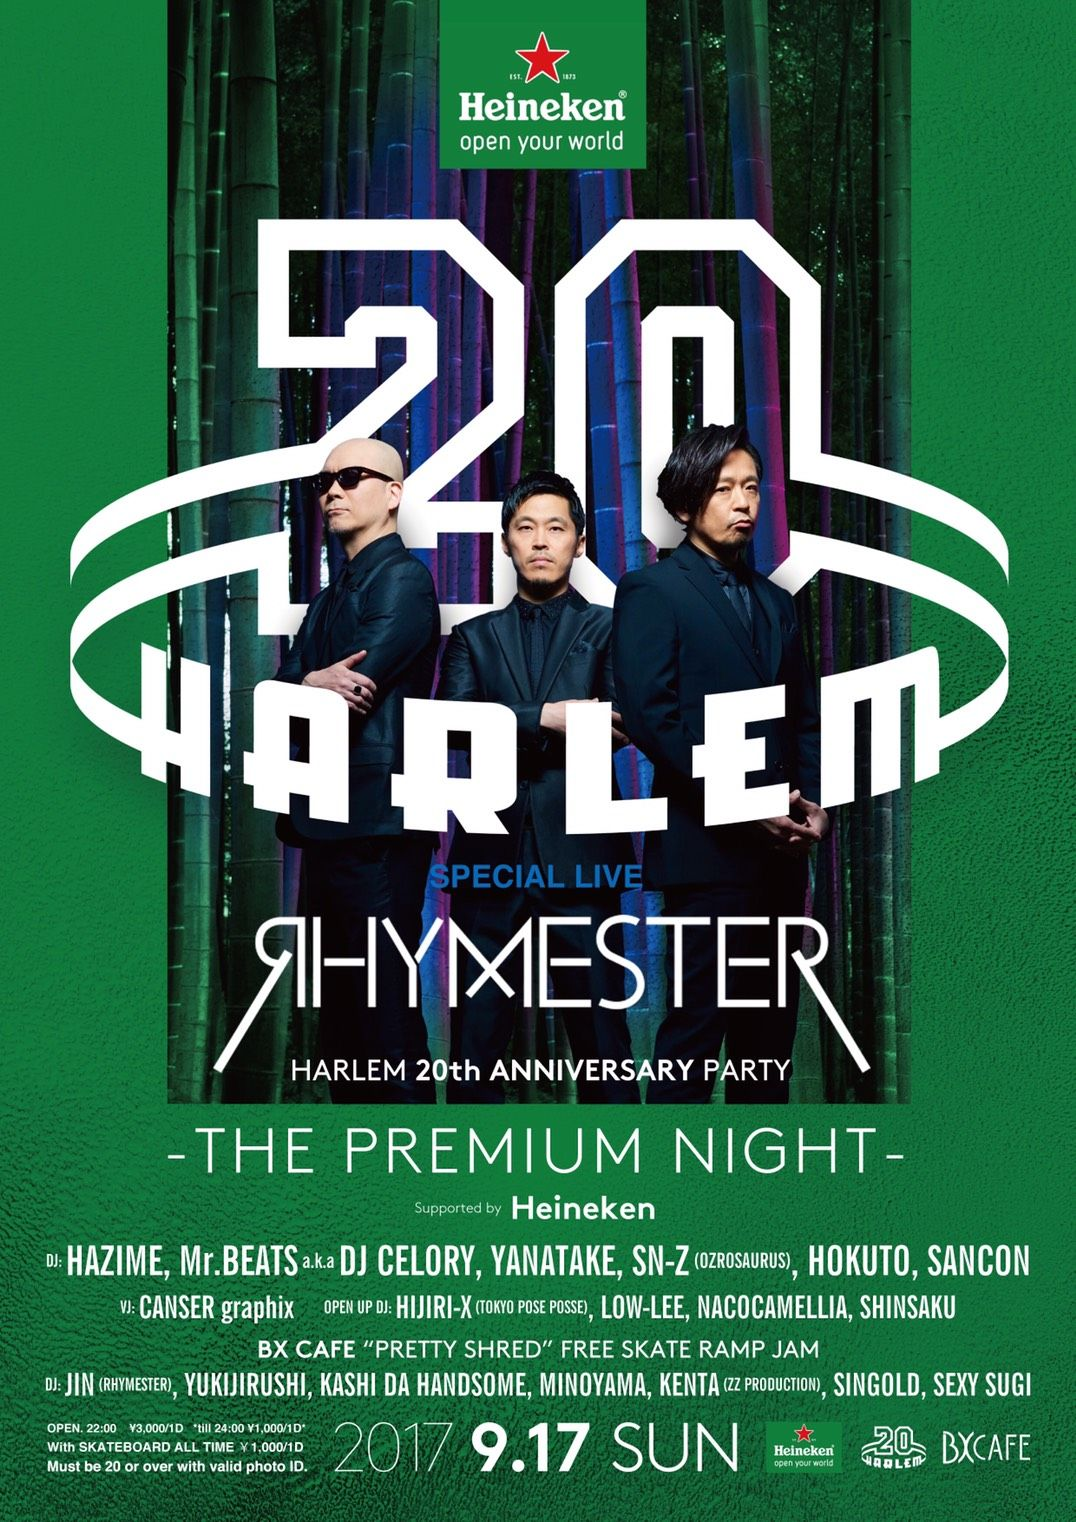 HARLEM 20th ANNIVERSARY PARTY -THE PREMIUM NIGHT- supported by Heineken